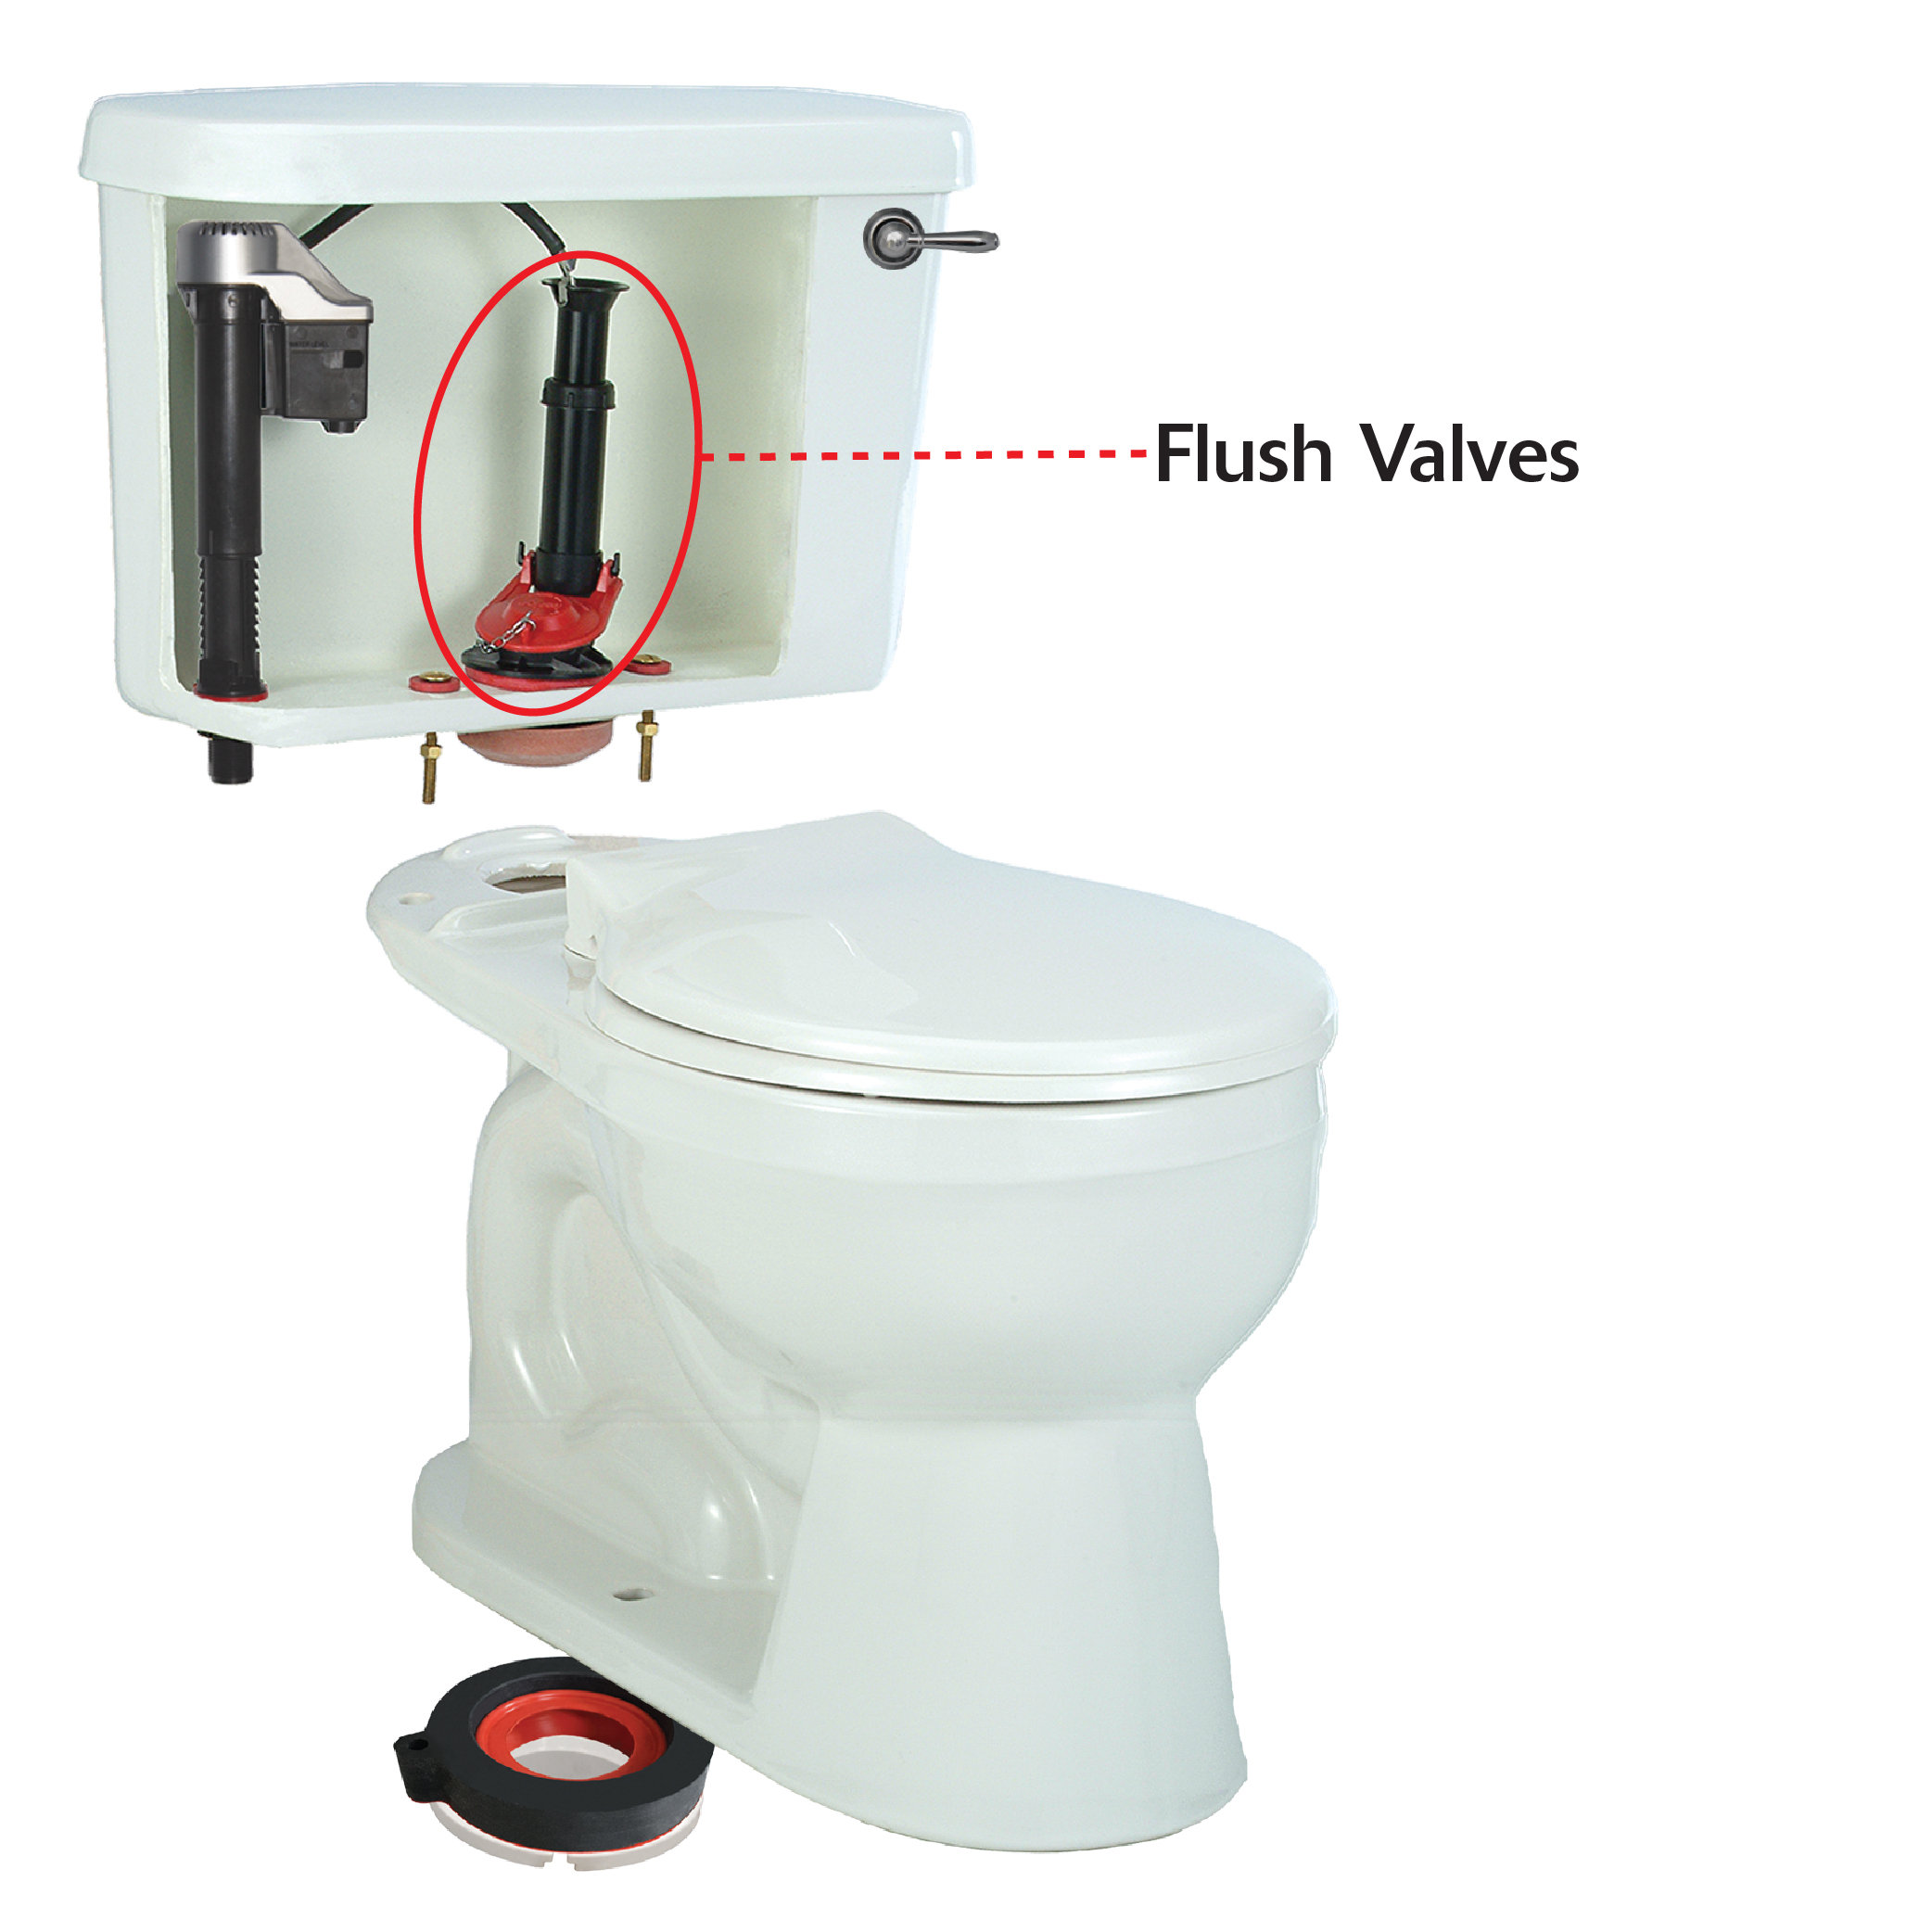 Flush Valve | Toilet Flush Valve Replacement | Korky Toilet Parts